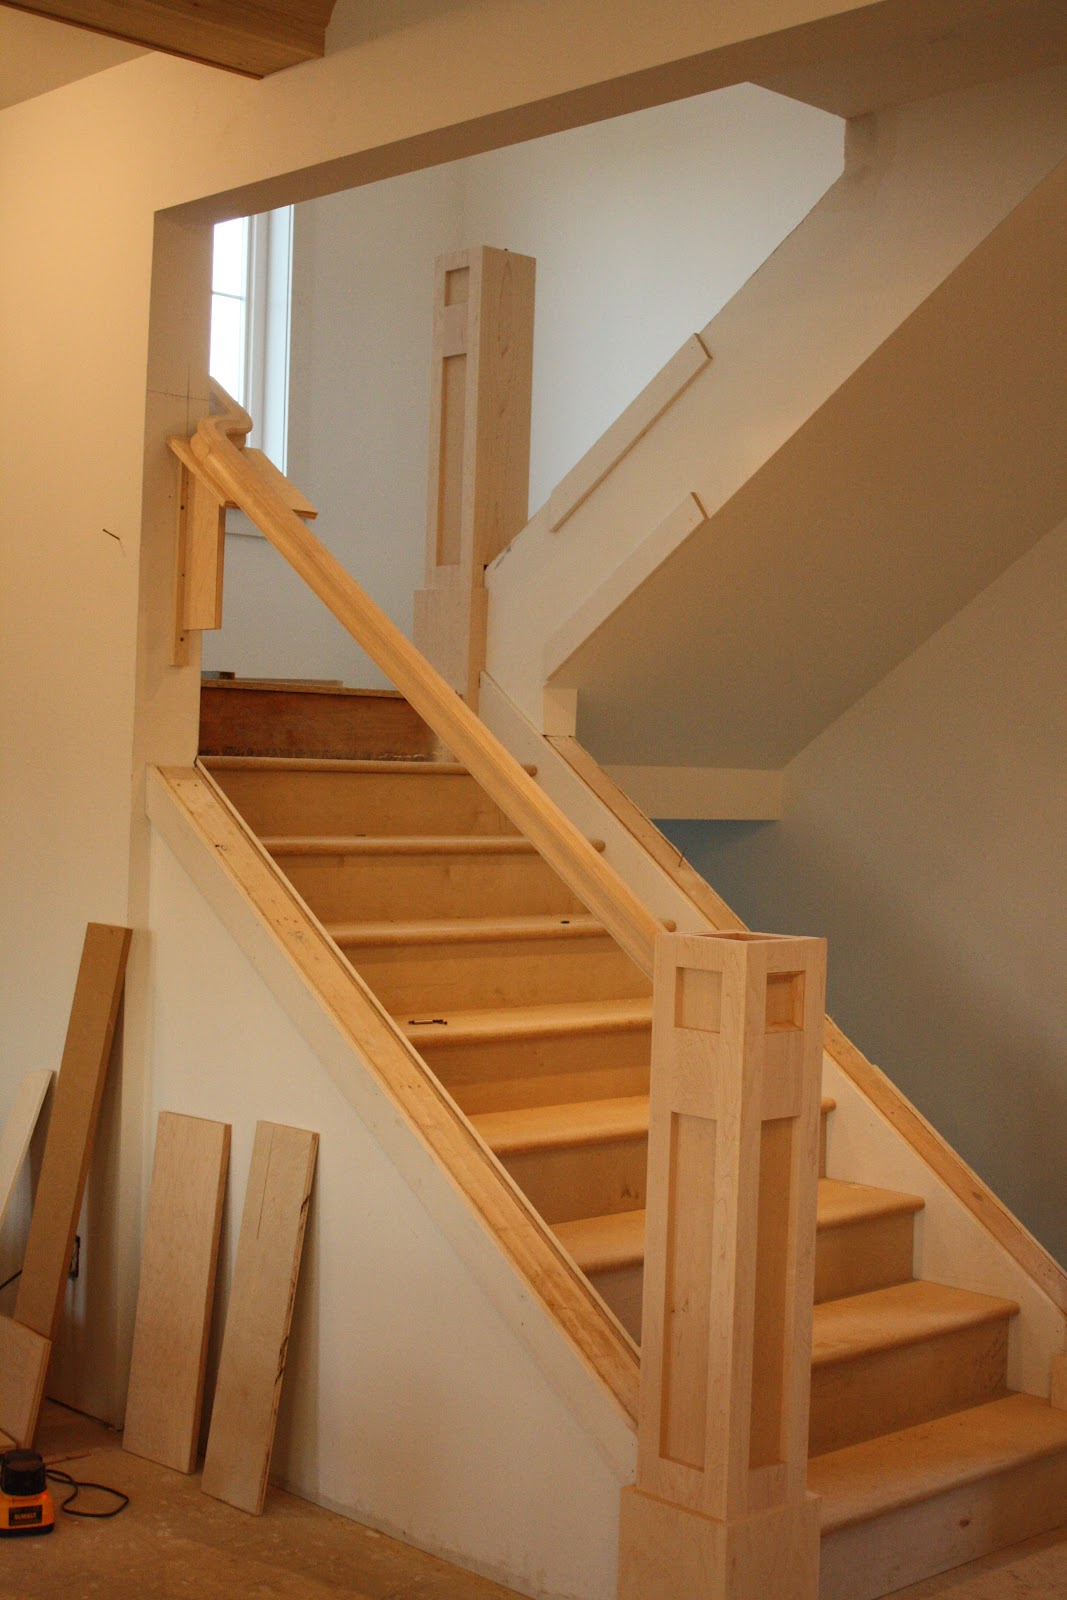 The Build: Stairs